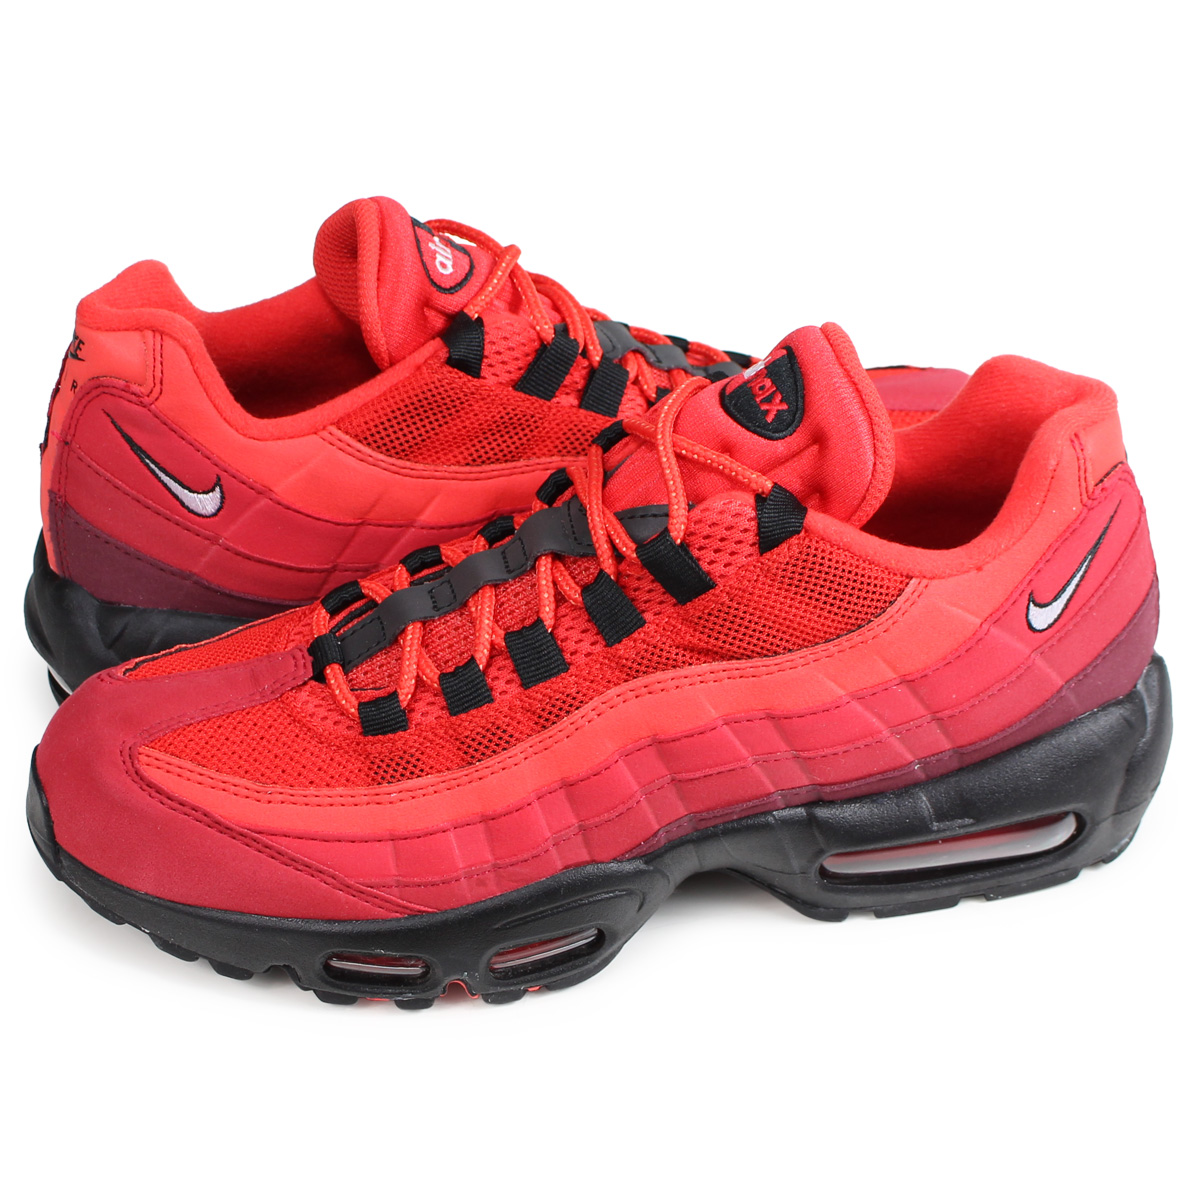 premium selection 0e75e 378c4 Nike NIKE Air Max 95 sneakers men gap Dis AIR MAX 95 OG red red AT2865-600  [the 8/23 additional arrival]